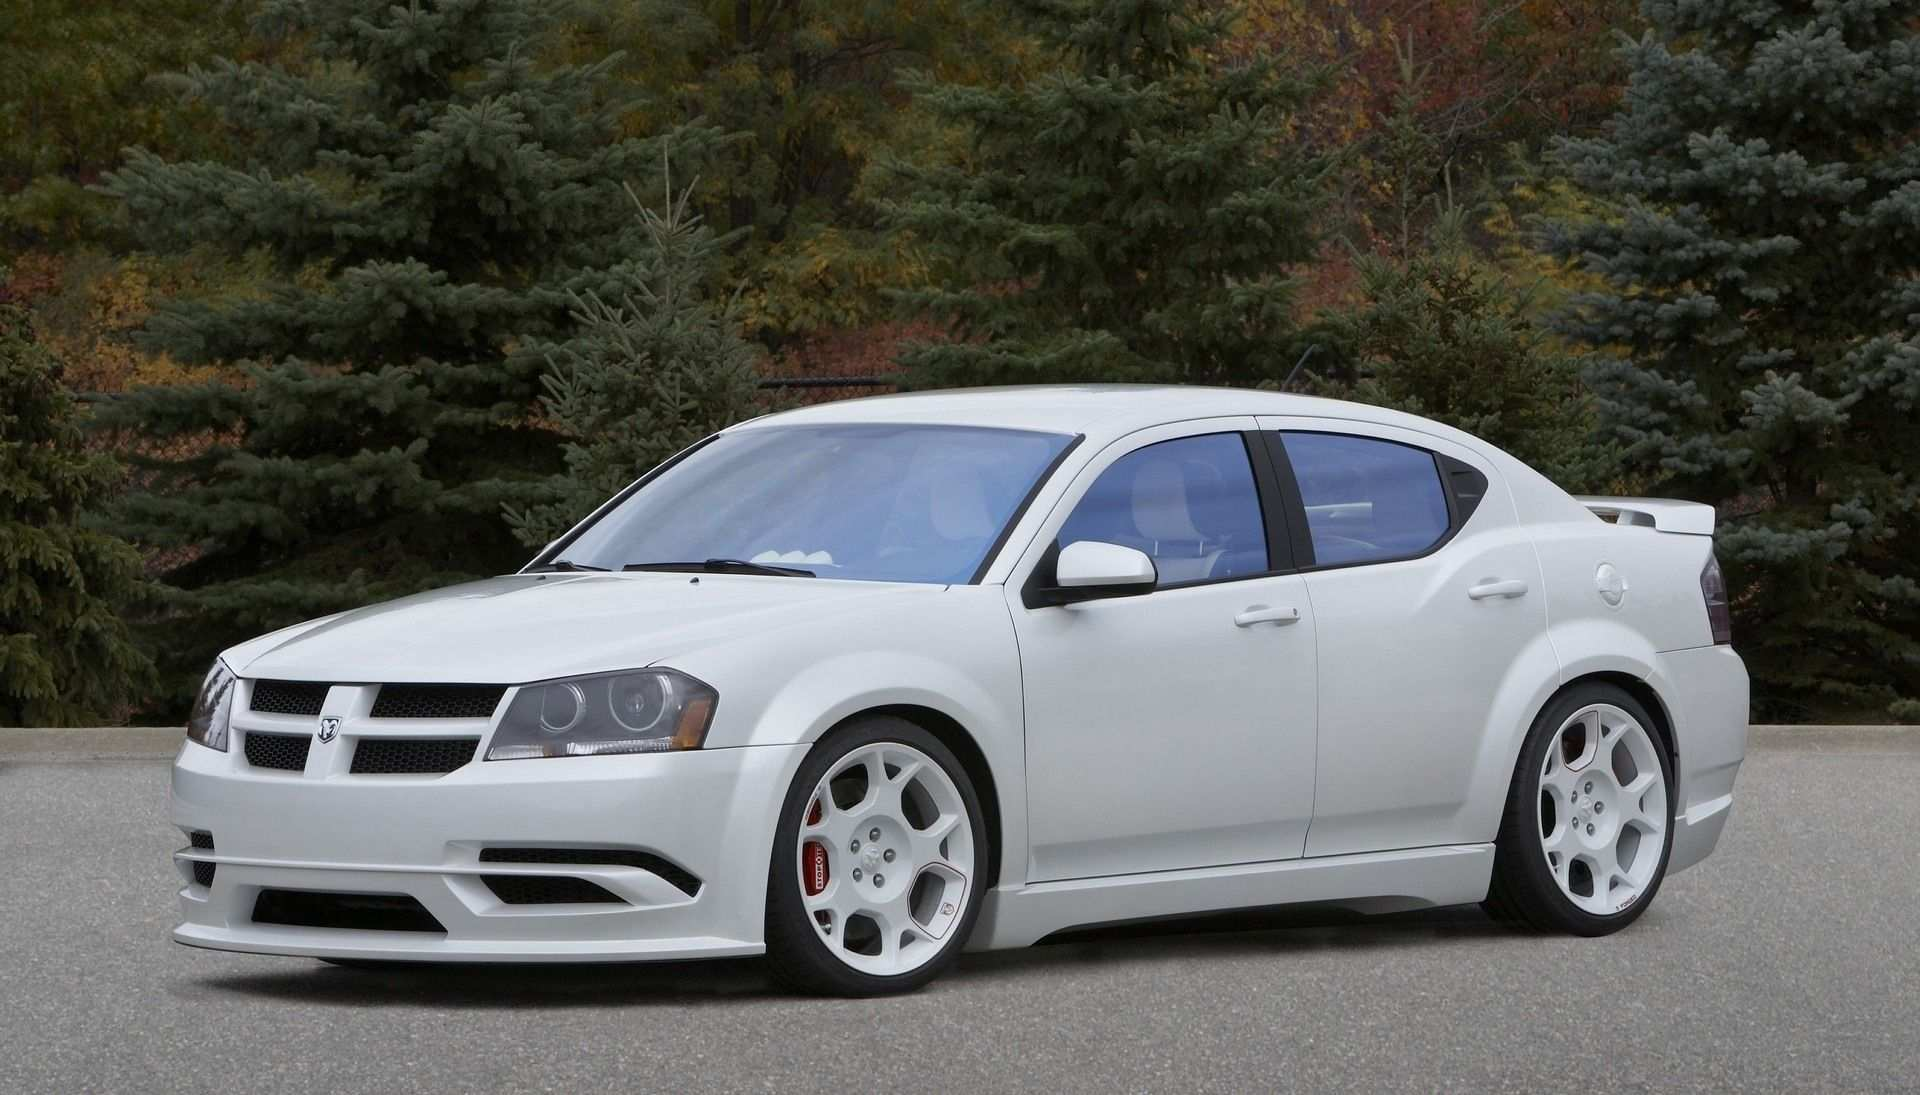 22 Concept of 2020 Dodge Avenger Srt Spesification for 2020 Dodge Avenger Srt